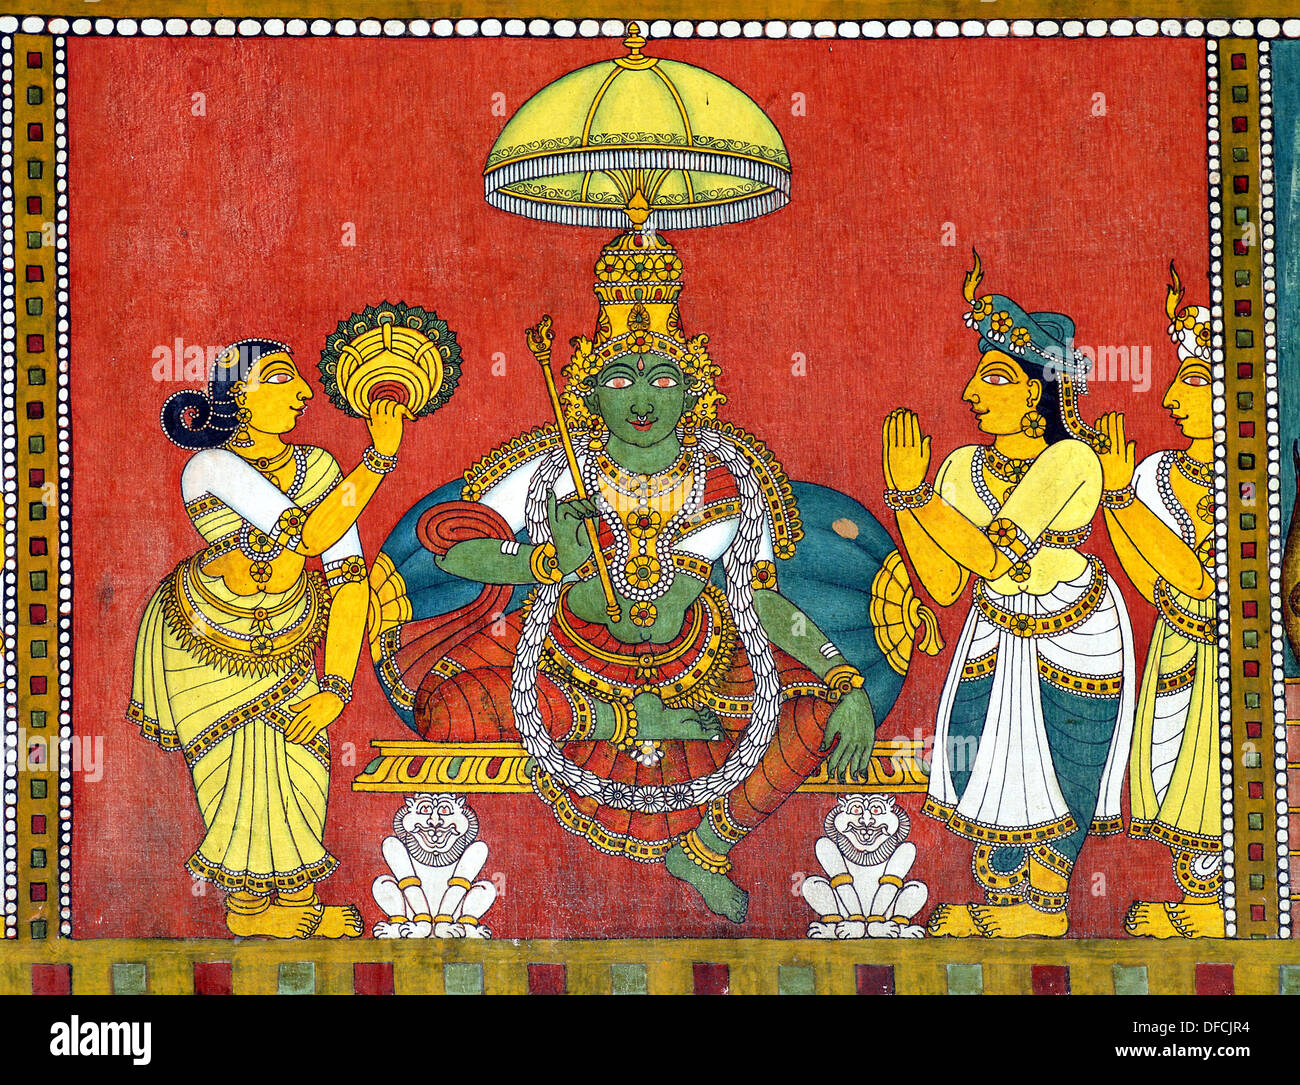 Murals of Thiruvilayadal Puranam (Lord Shivas Game, the collection of 64  stories, composed by Paranjyoti Munivar) in Sri Stock Photo - Alamy